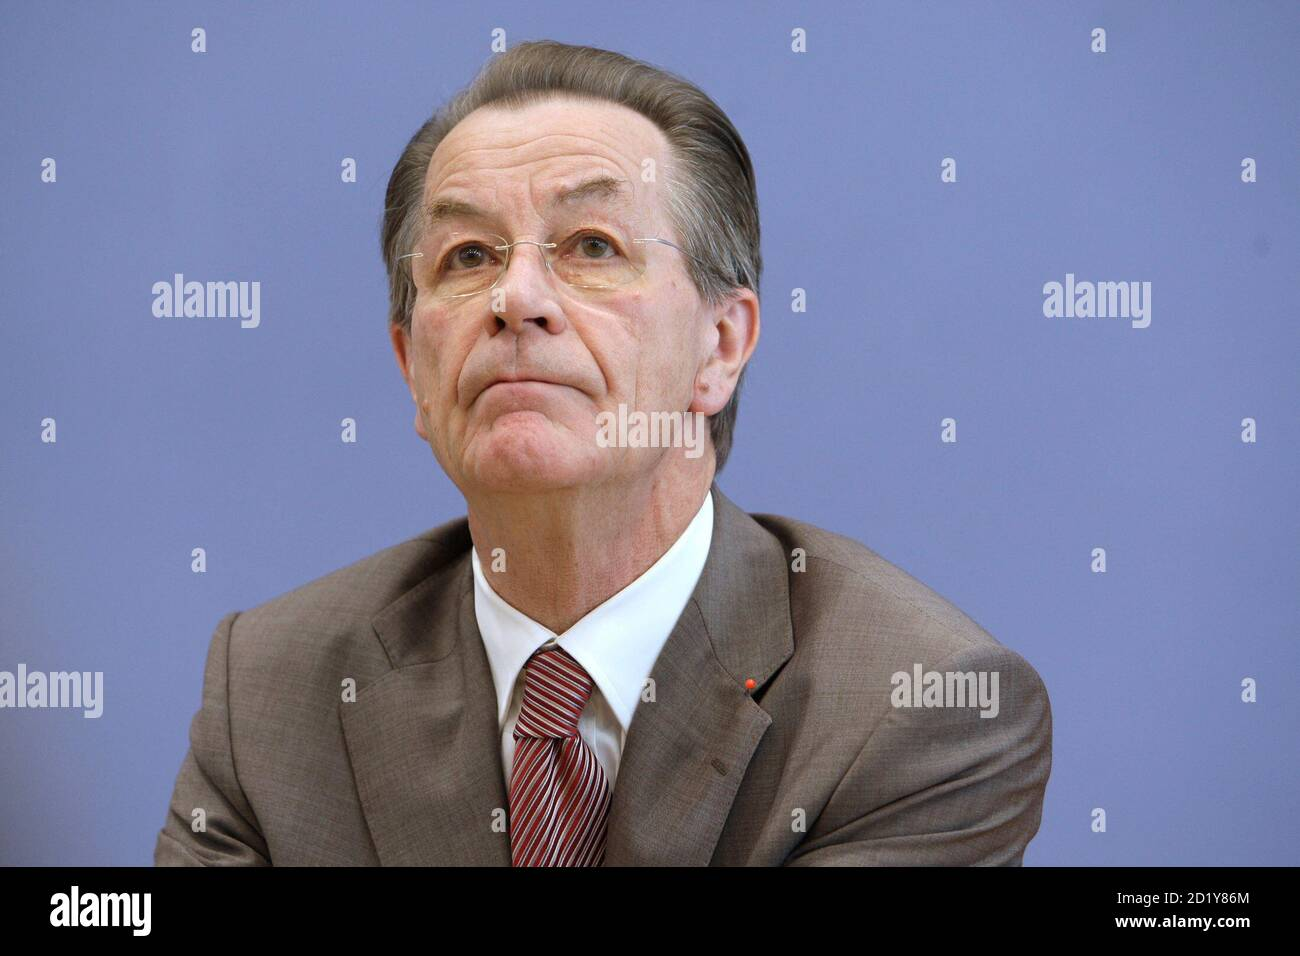 Franz Muentefering, designated chairman of Germany's Social Democratic party (SPD), addresses a news conference in Berlin, October 8, 2008.     REUTERS/Tobias Schwarz     (GERMANY) Stock Photo